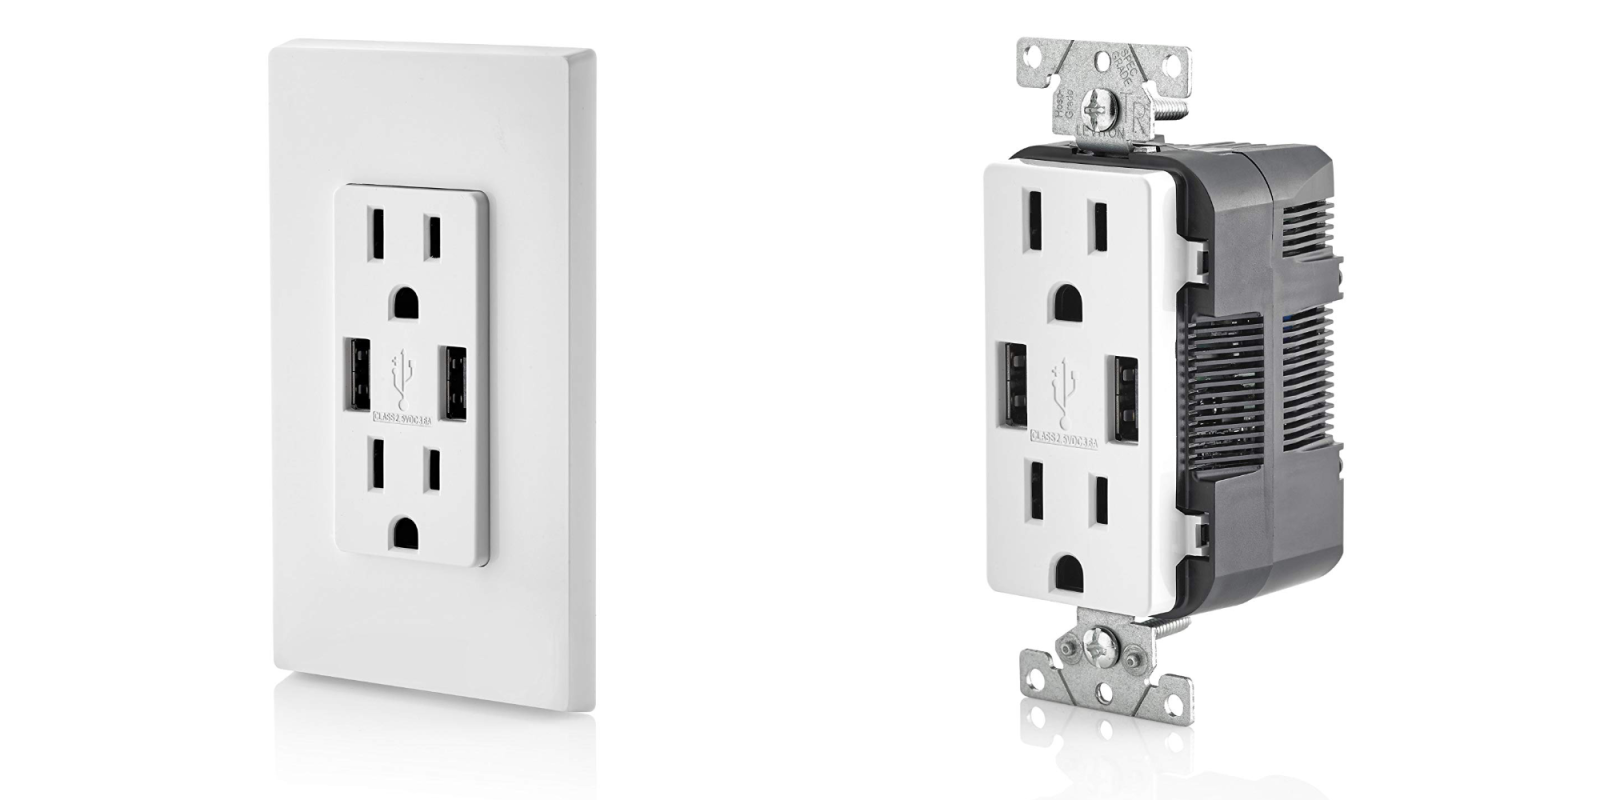 Smartphone Accessories: Leviton Two-Port USB In-Wall Outlet $16 Prime shipped, more